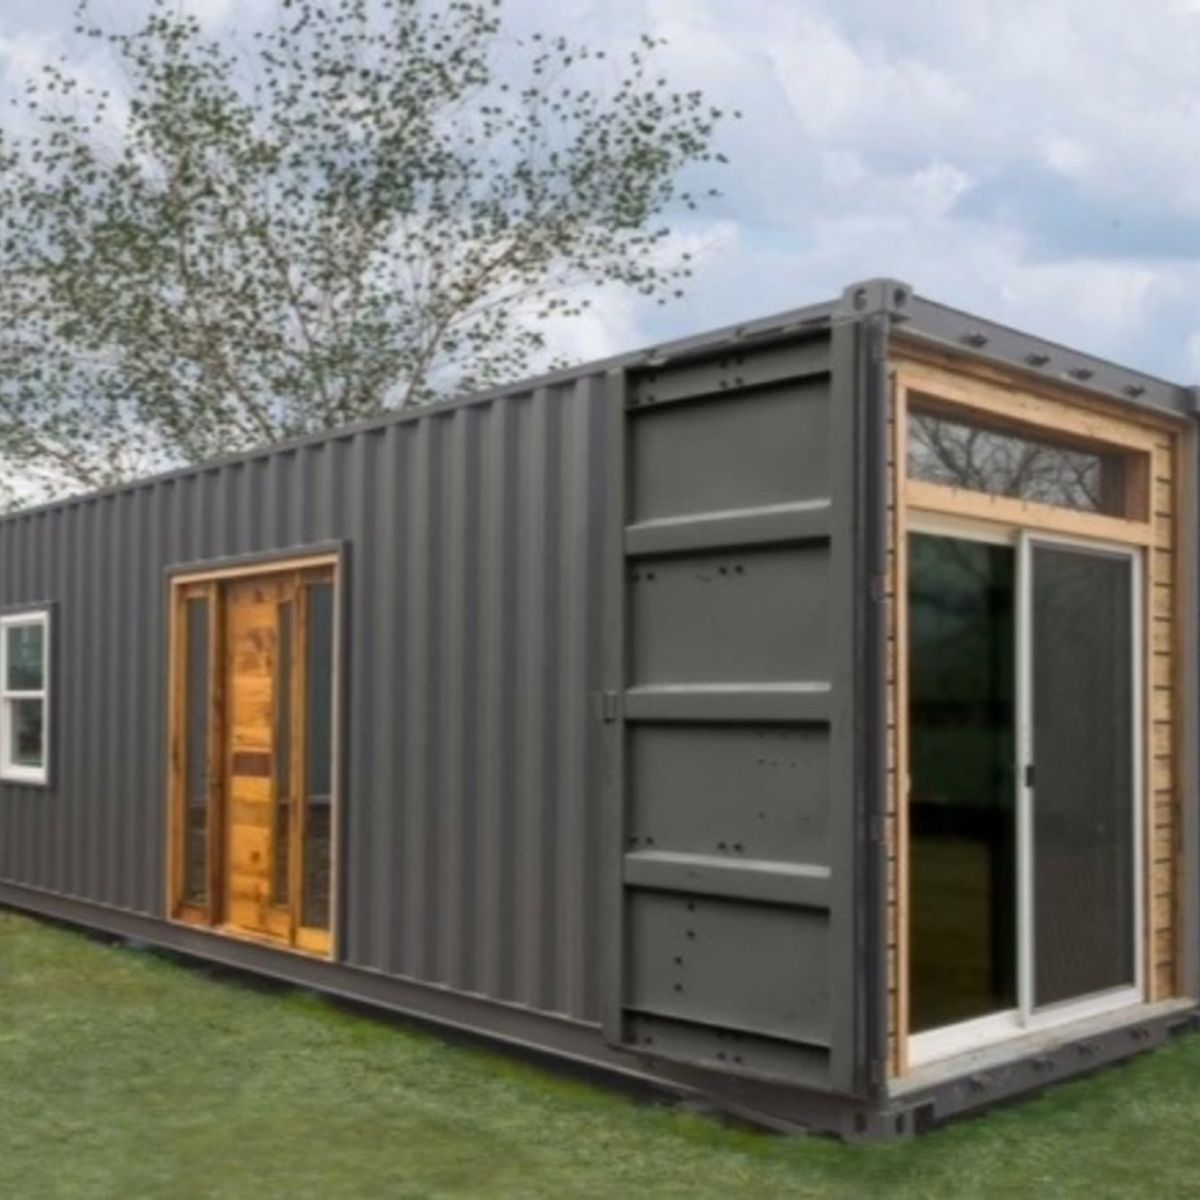 Minimalist Homes - Tiny House for Sale in null, Michigan - Tiny House  Listings